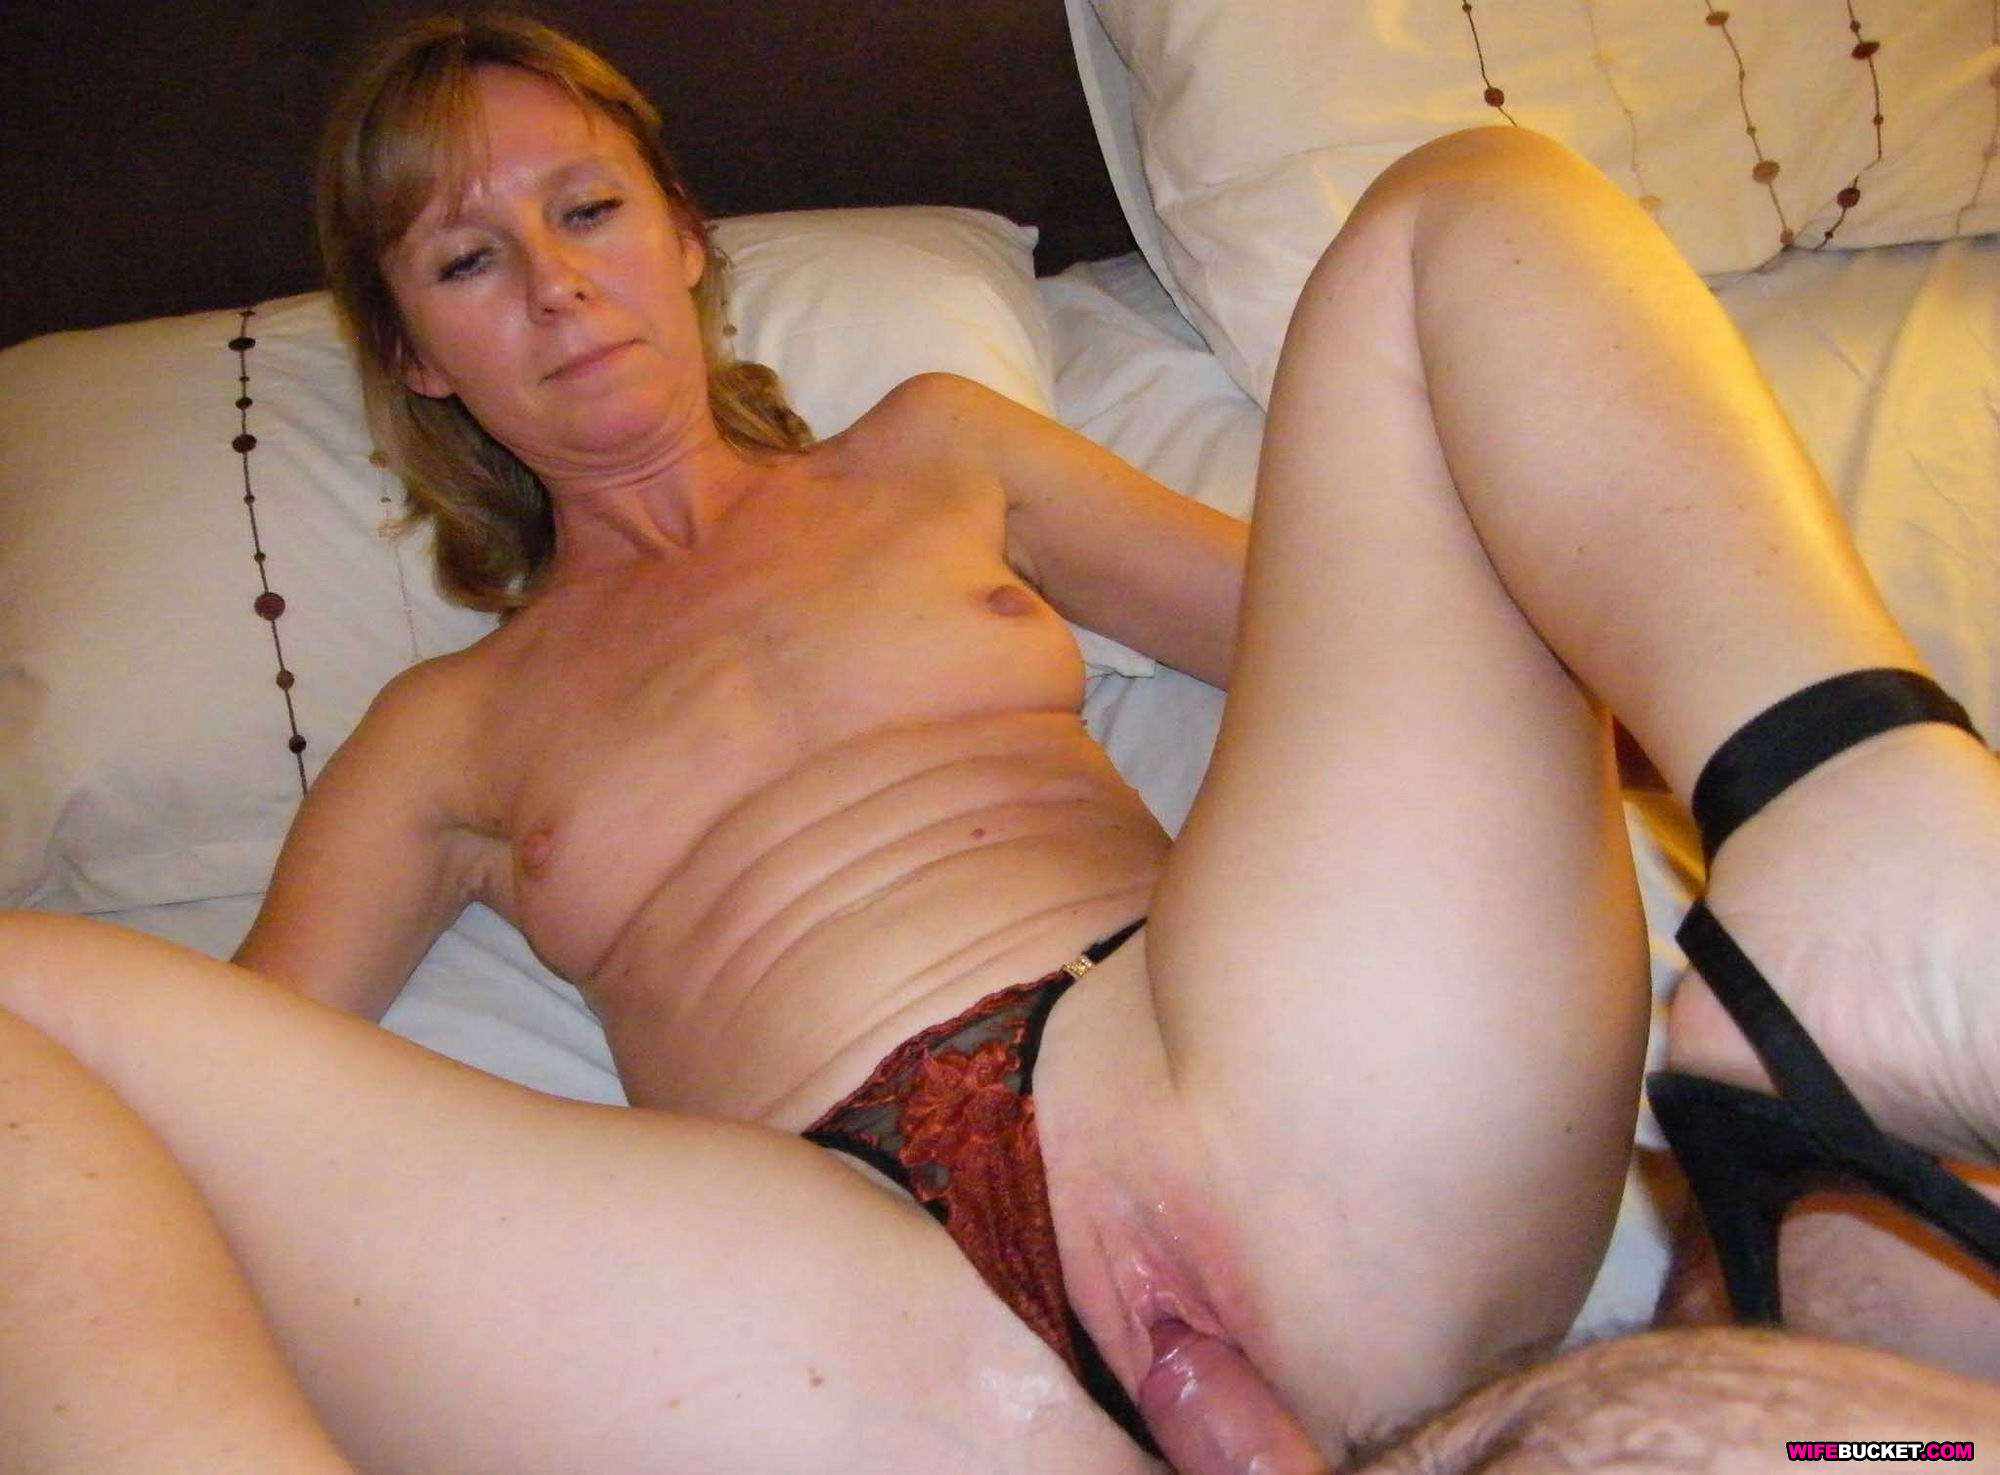 Mature wife cheating on husband with farmer boy